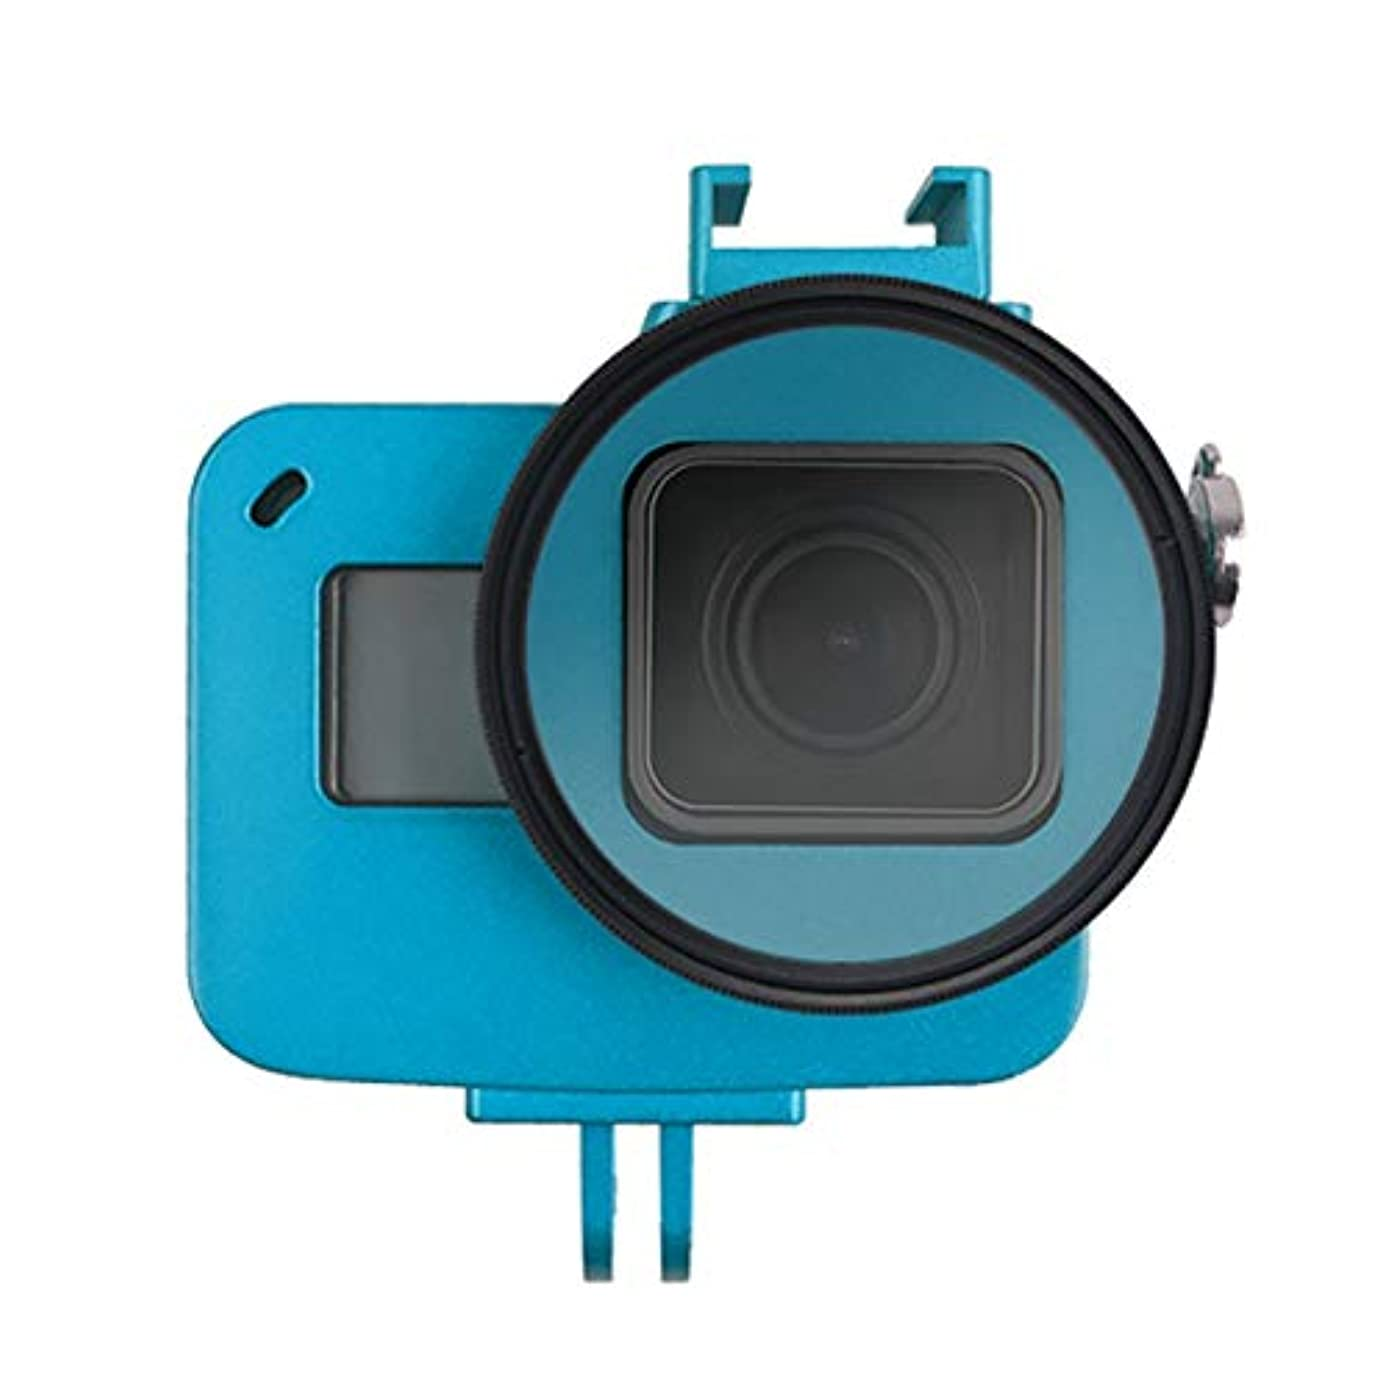 for DJI Gopro Action Camera, Housing Shell CNC Aluminum Alloy Protective Cage with Insurance Frame & 52mm UV Lens for GoPro HERO7 Black /6/5 (Black) (Color : Blue)